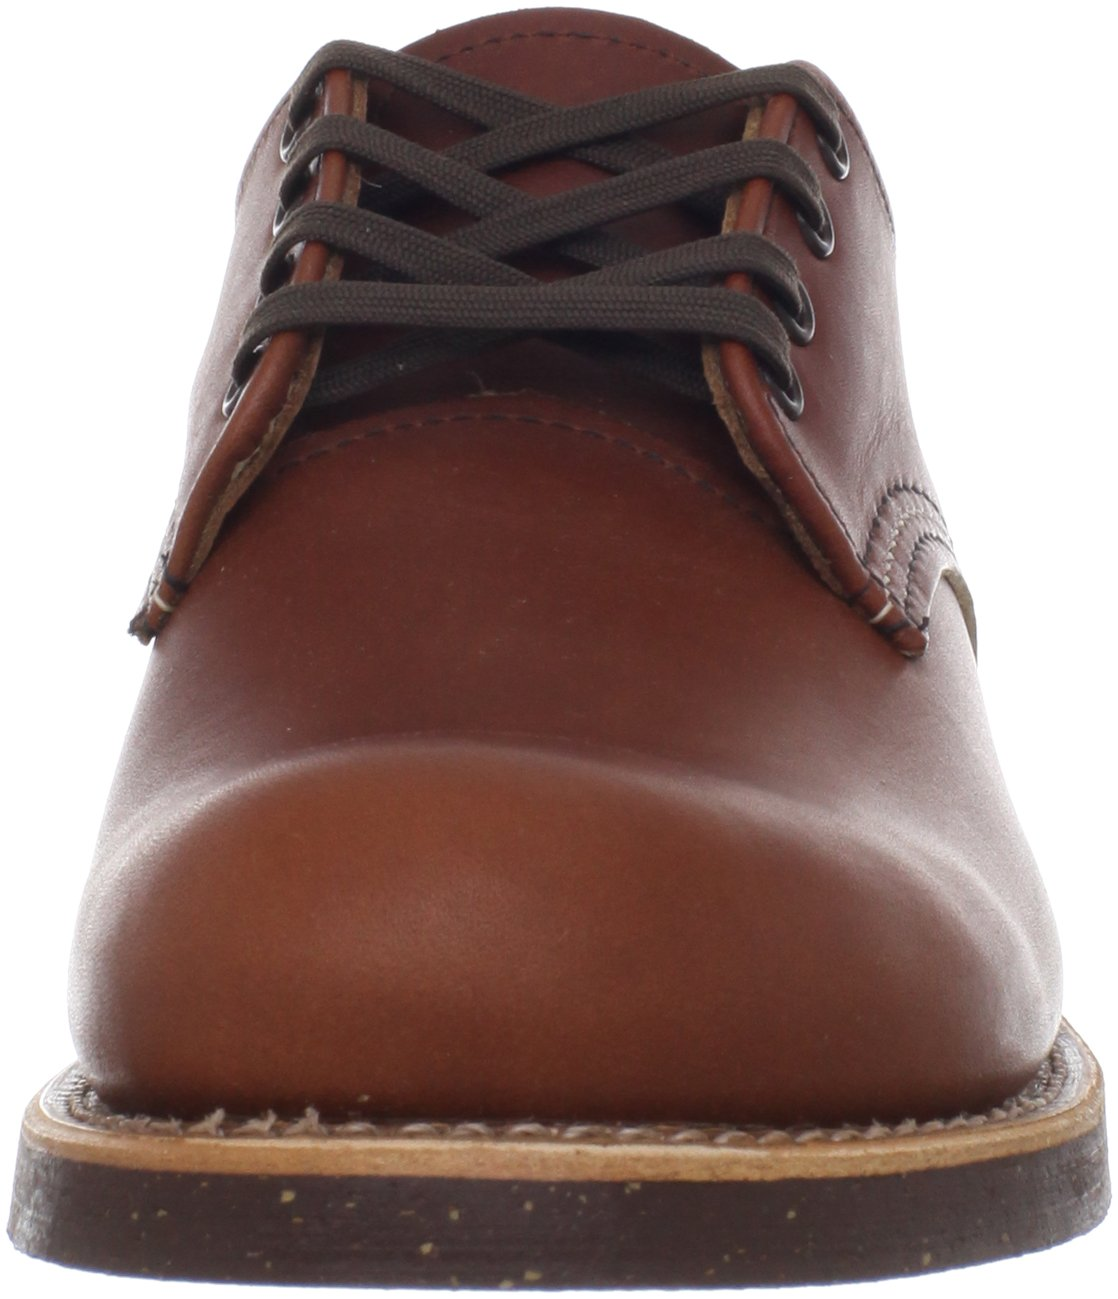 Red Wing Heritage Men's Work Oxford Shoe,Brick,10 D(M) US by Red Wing (Image #4)